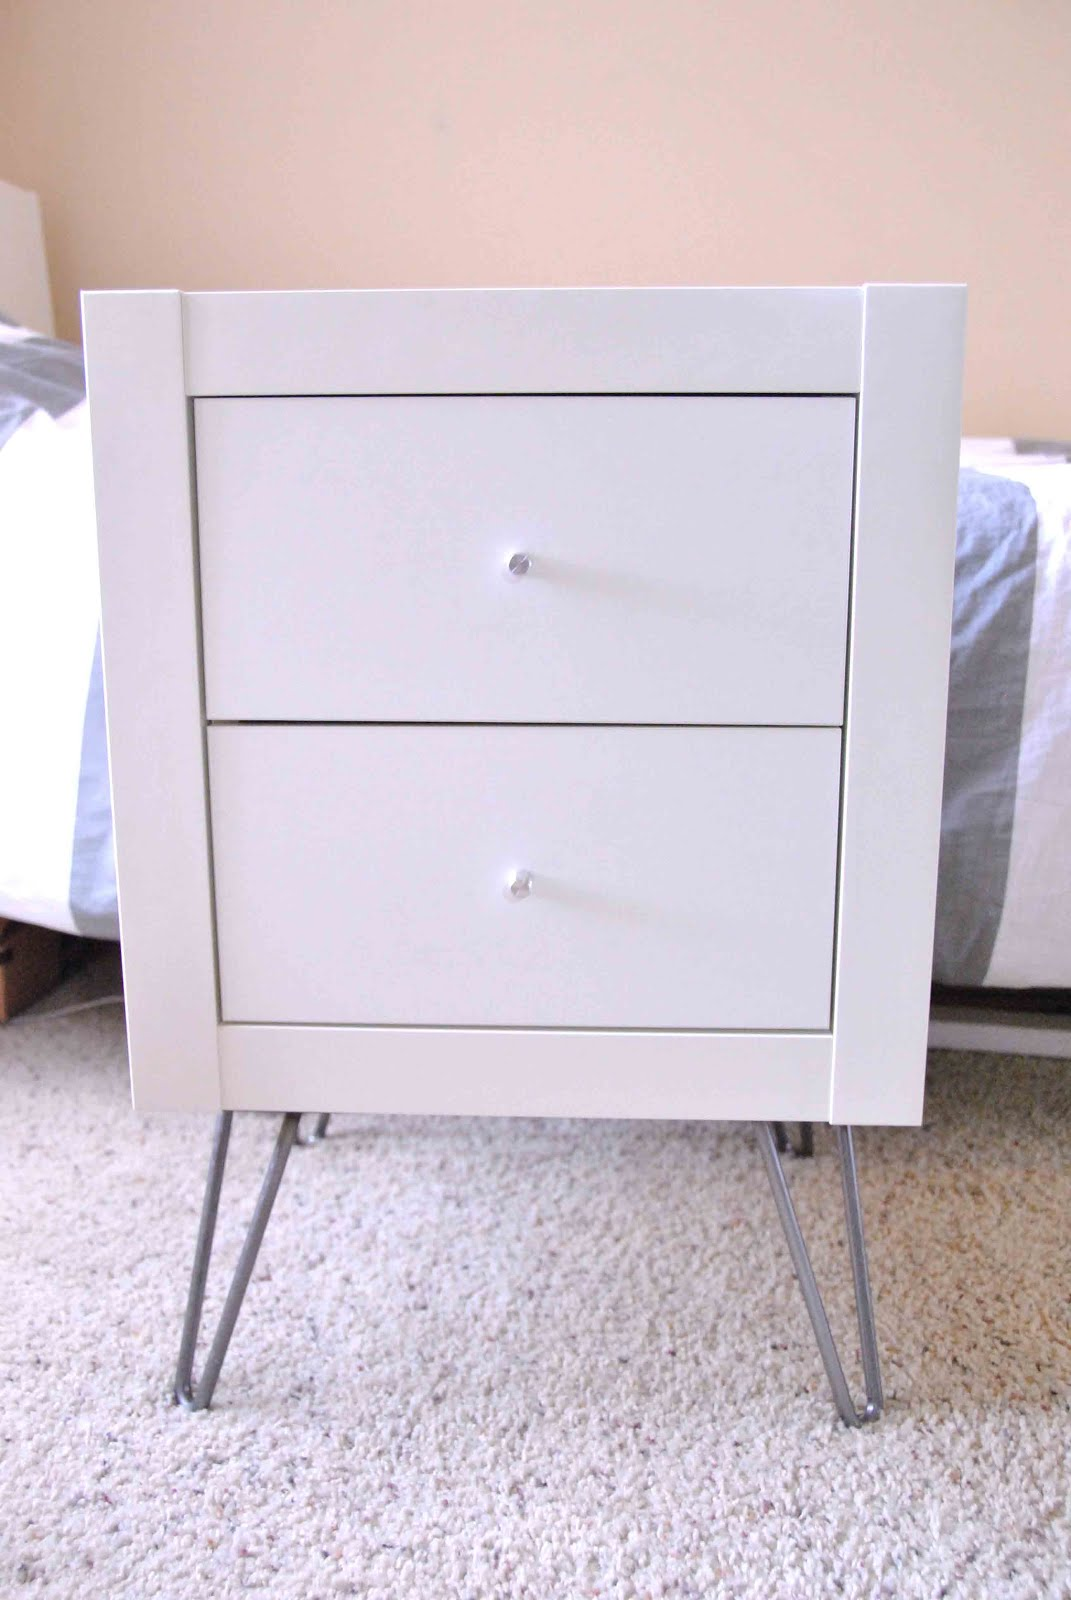 Expedit wall shelf into nightstand - IKEA Hackers - IKEA Hackers